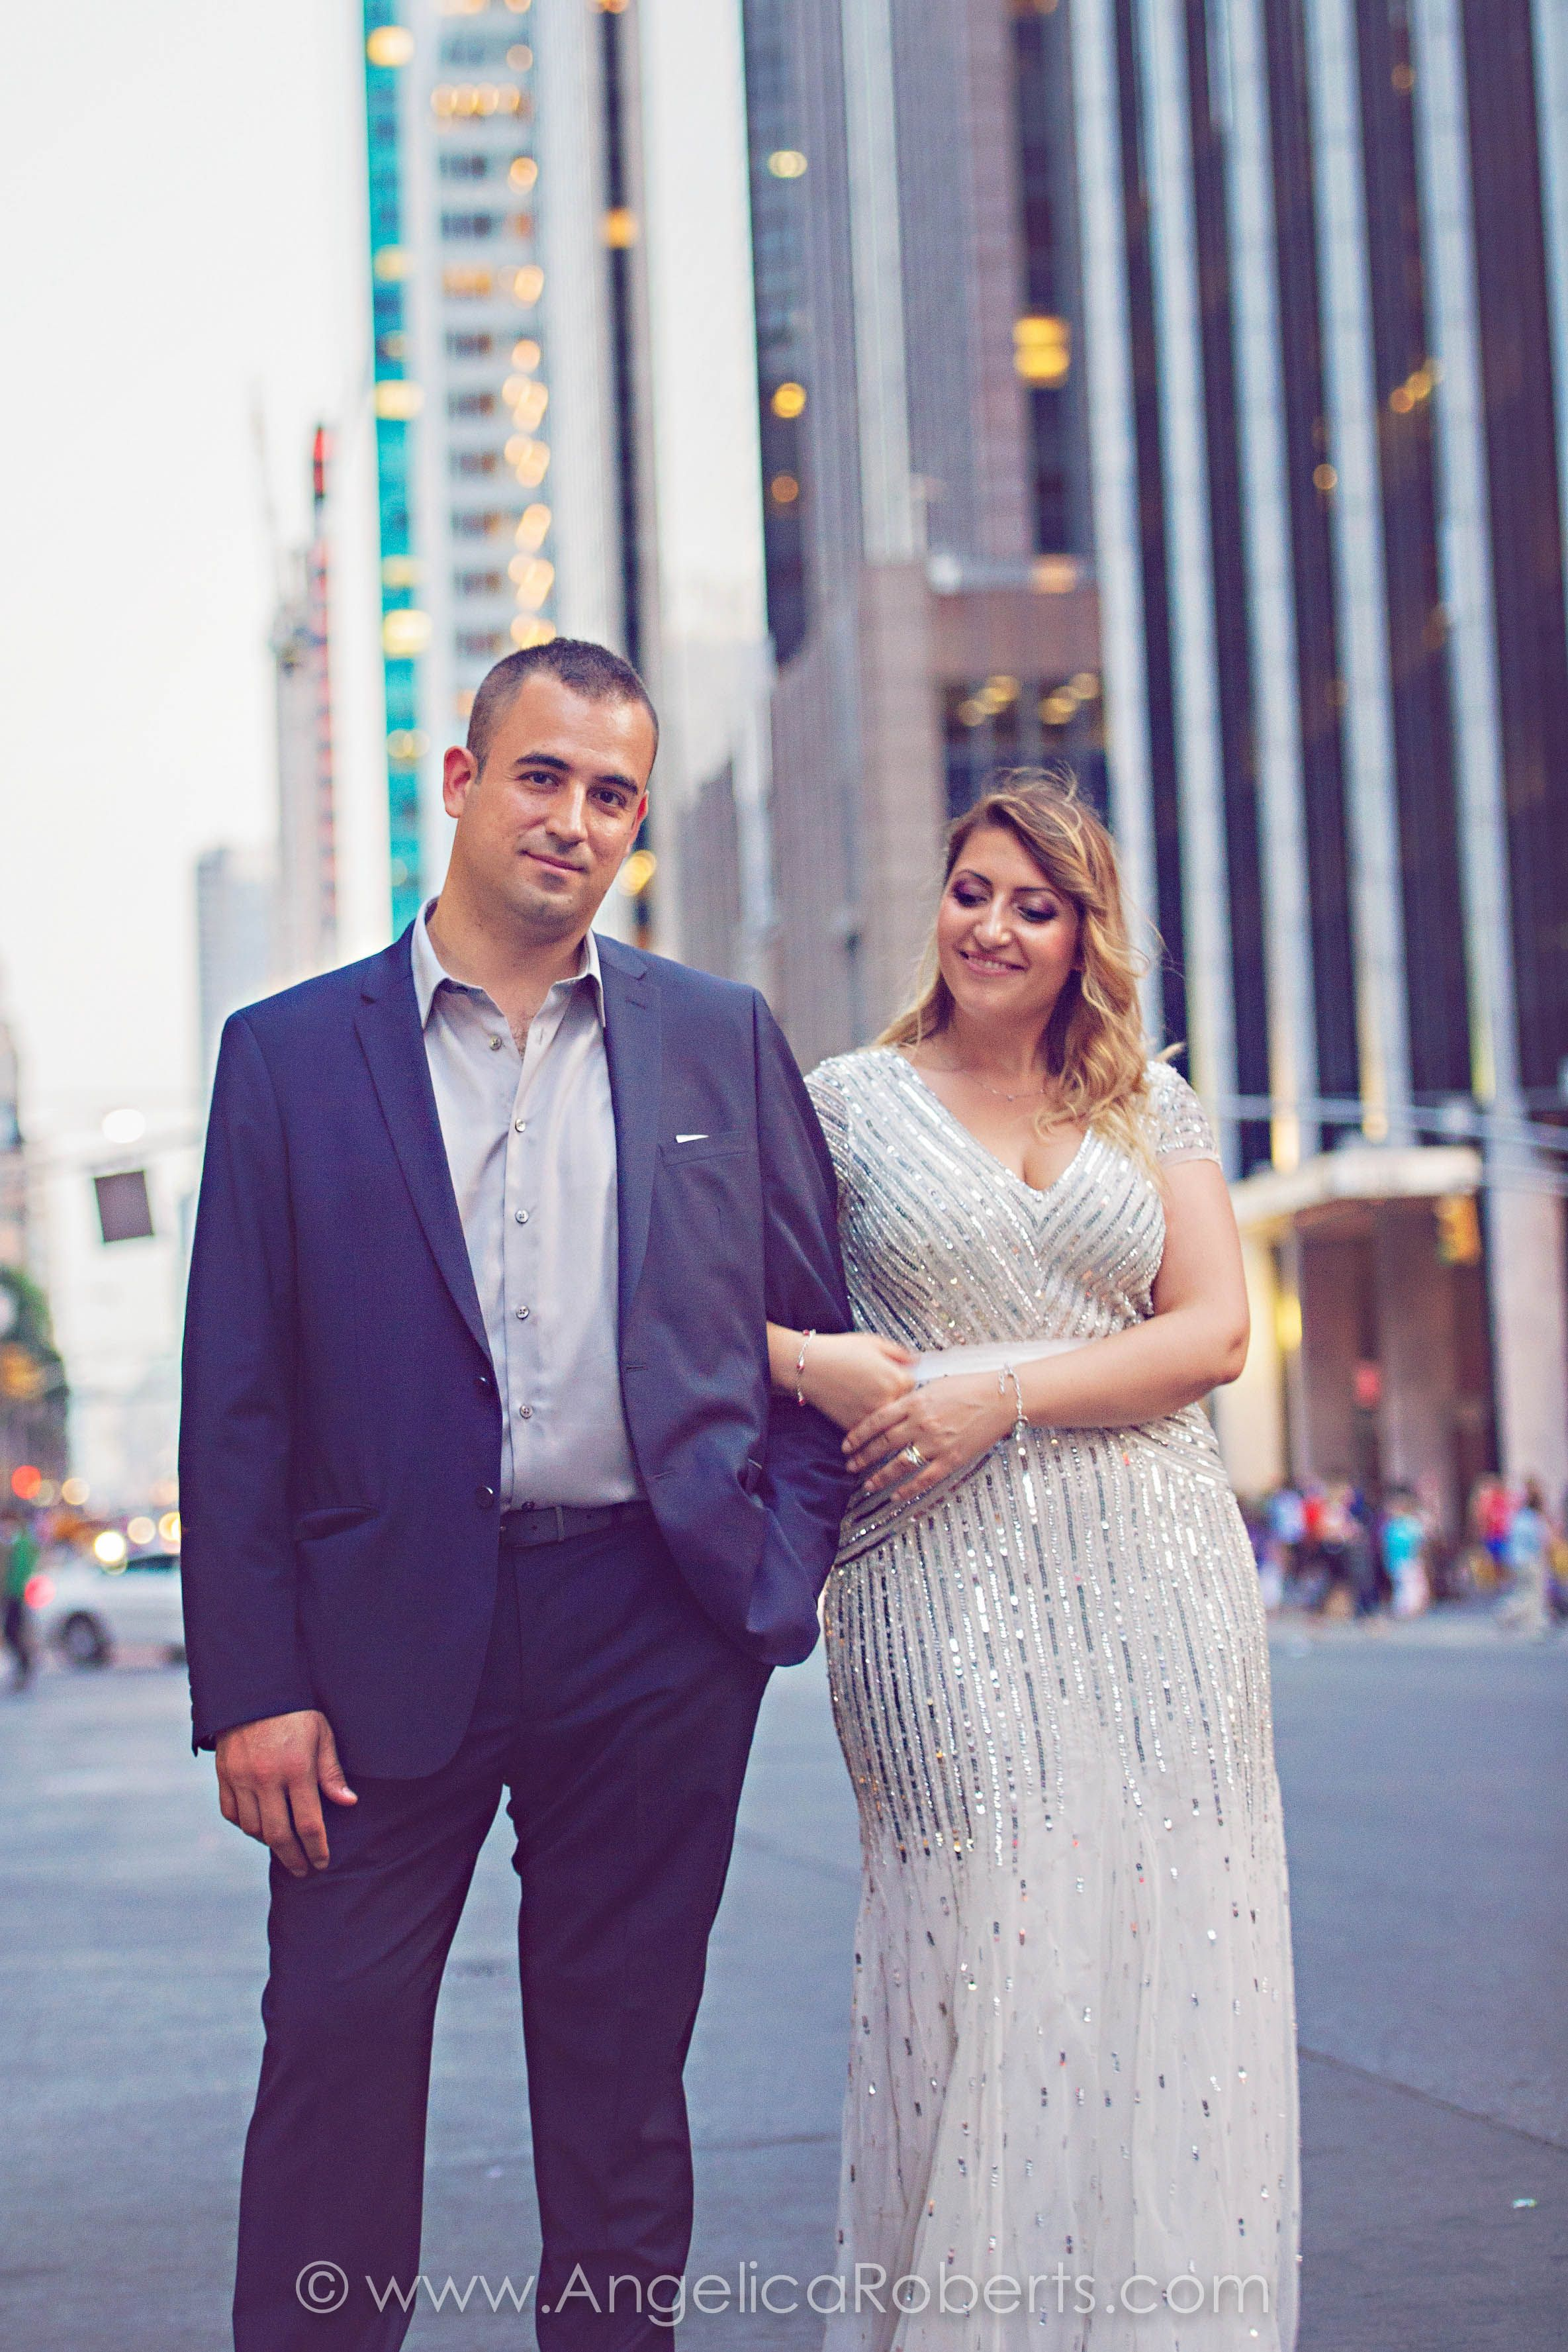 #NYC #street #couple NYC engagement photography by Angelica Roberts Photography. Copyright www.angelicaroberts.com